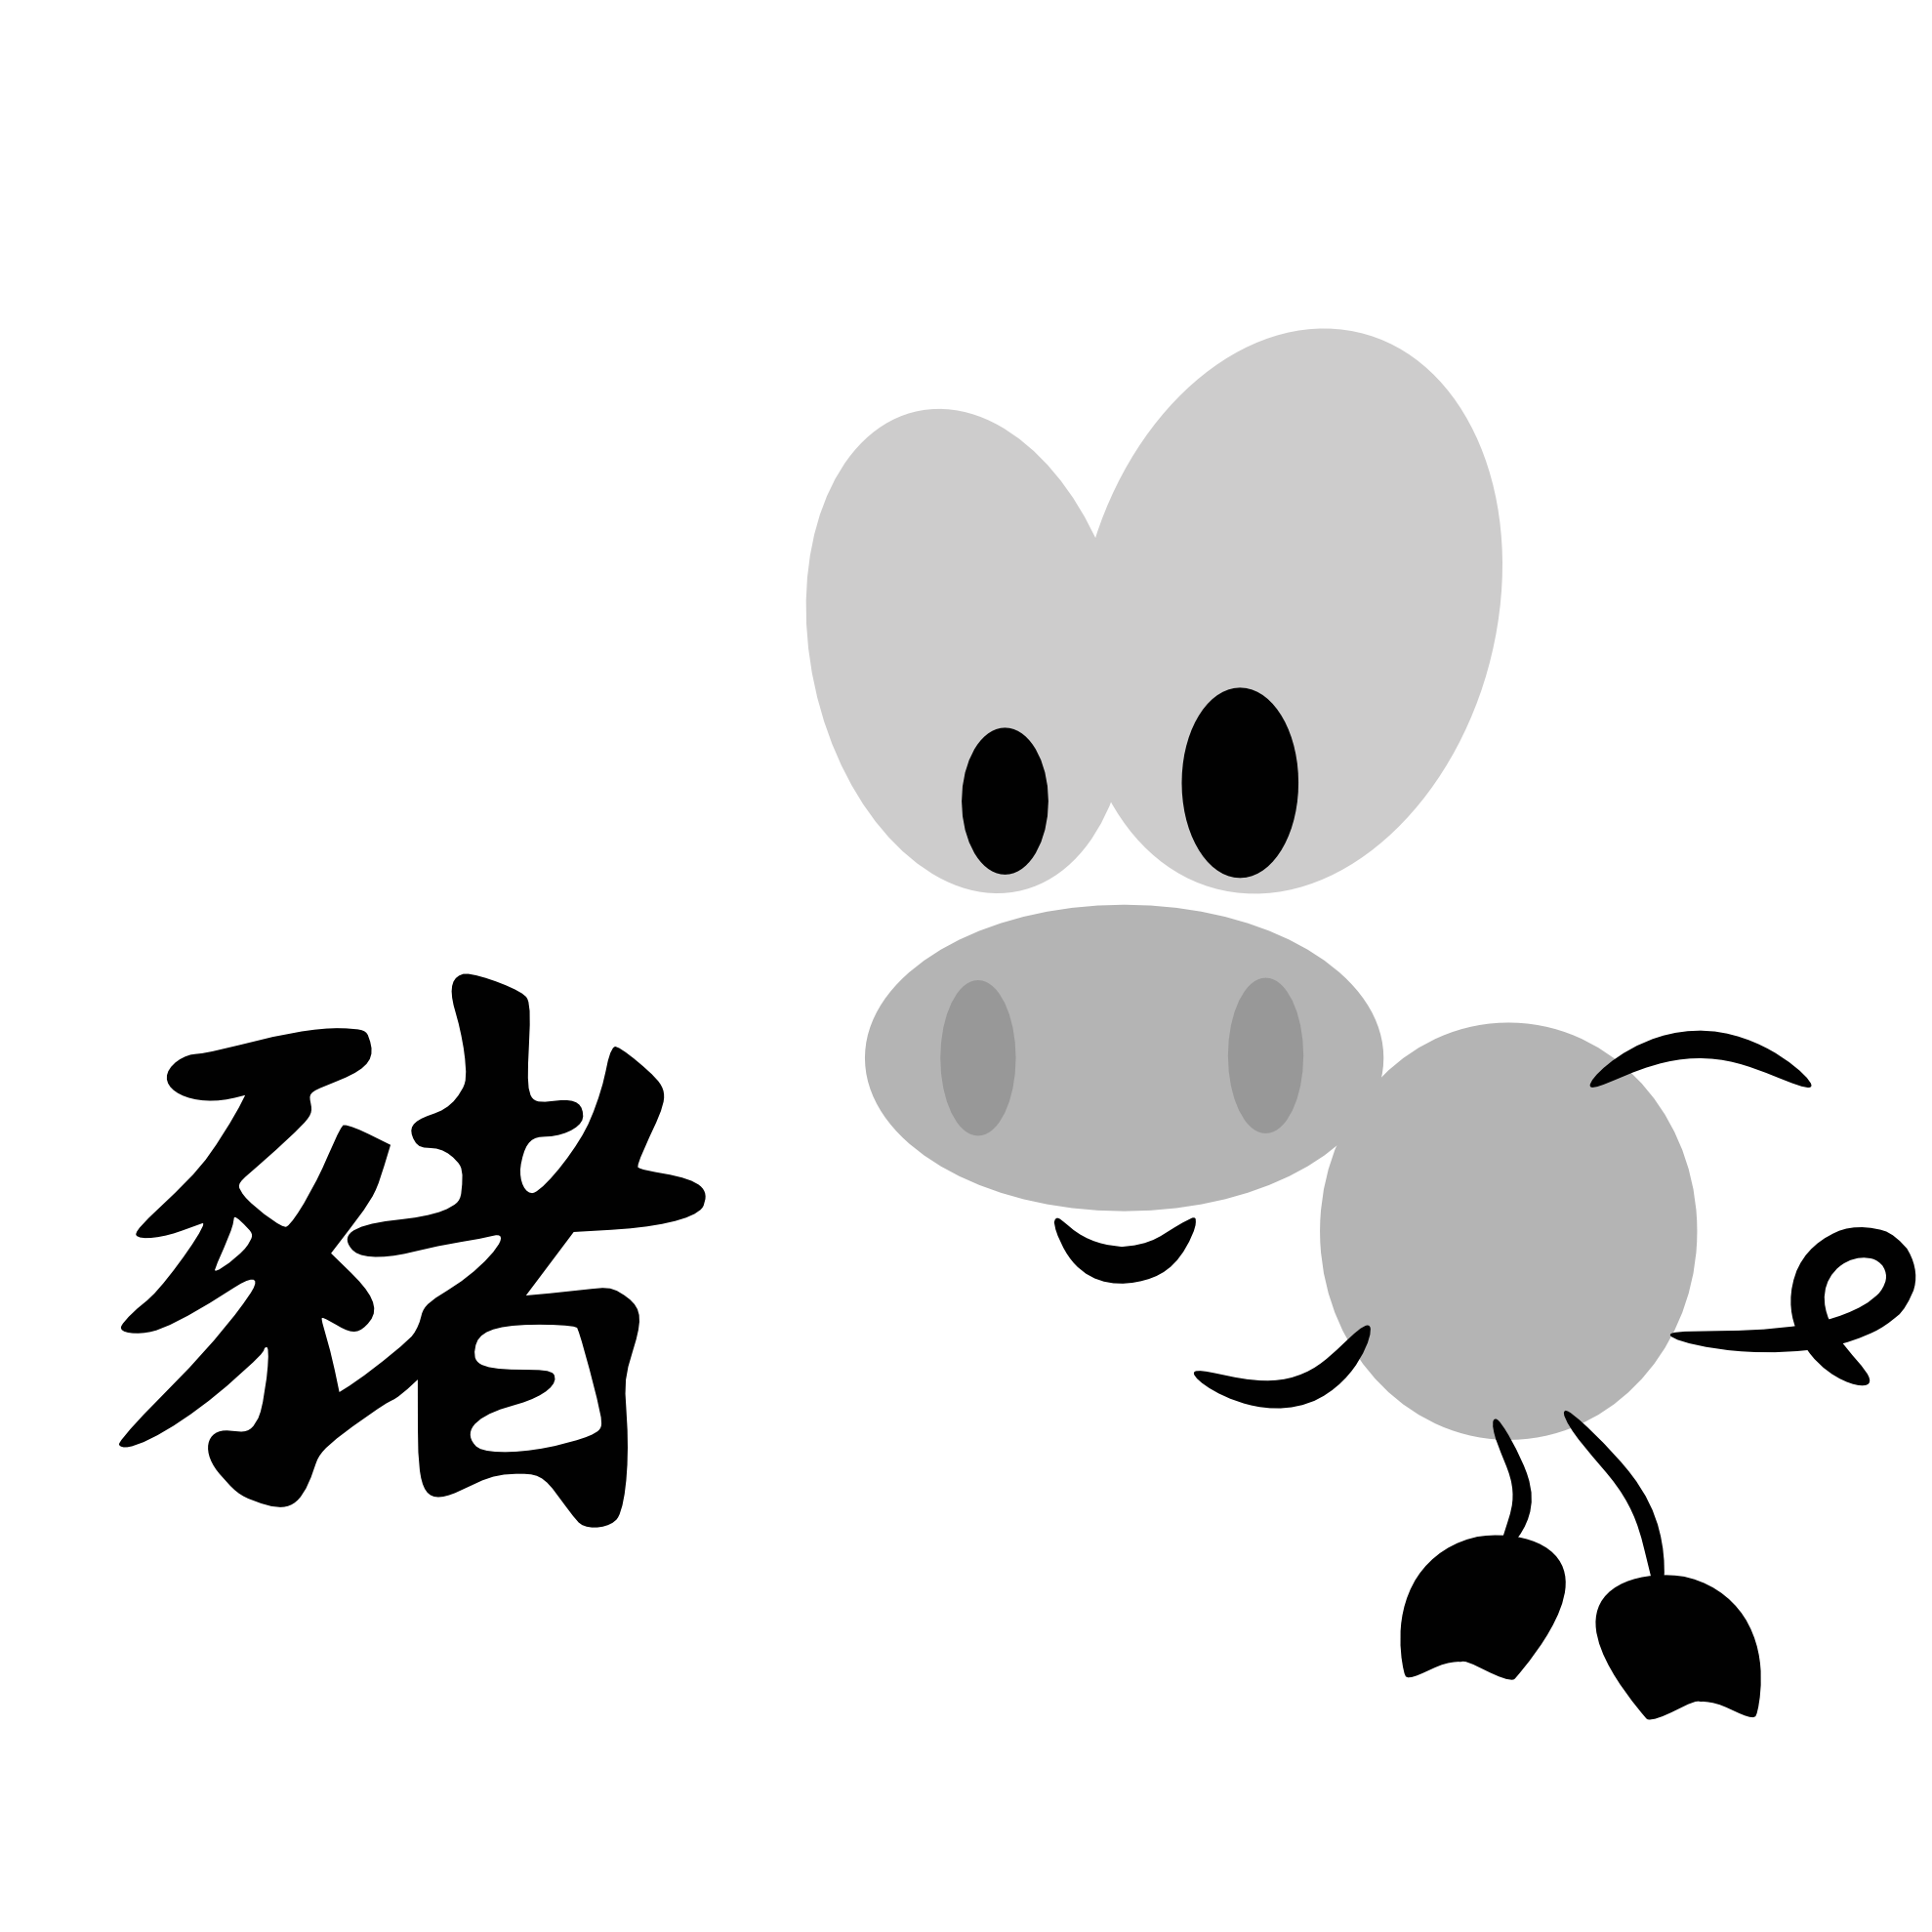 Clipart pig character. Chinese horoscope sign transparent